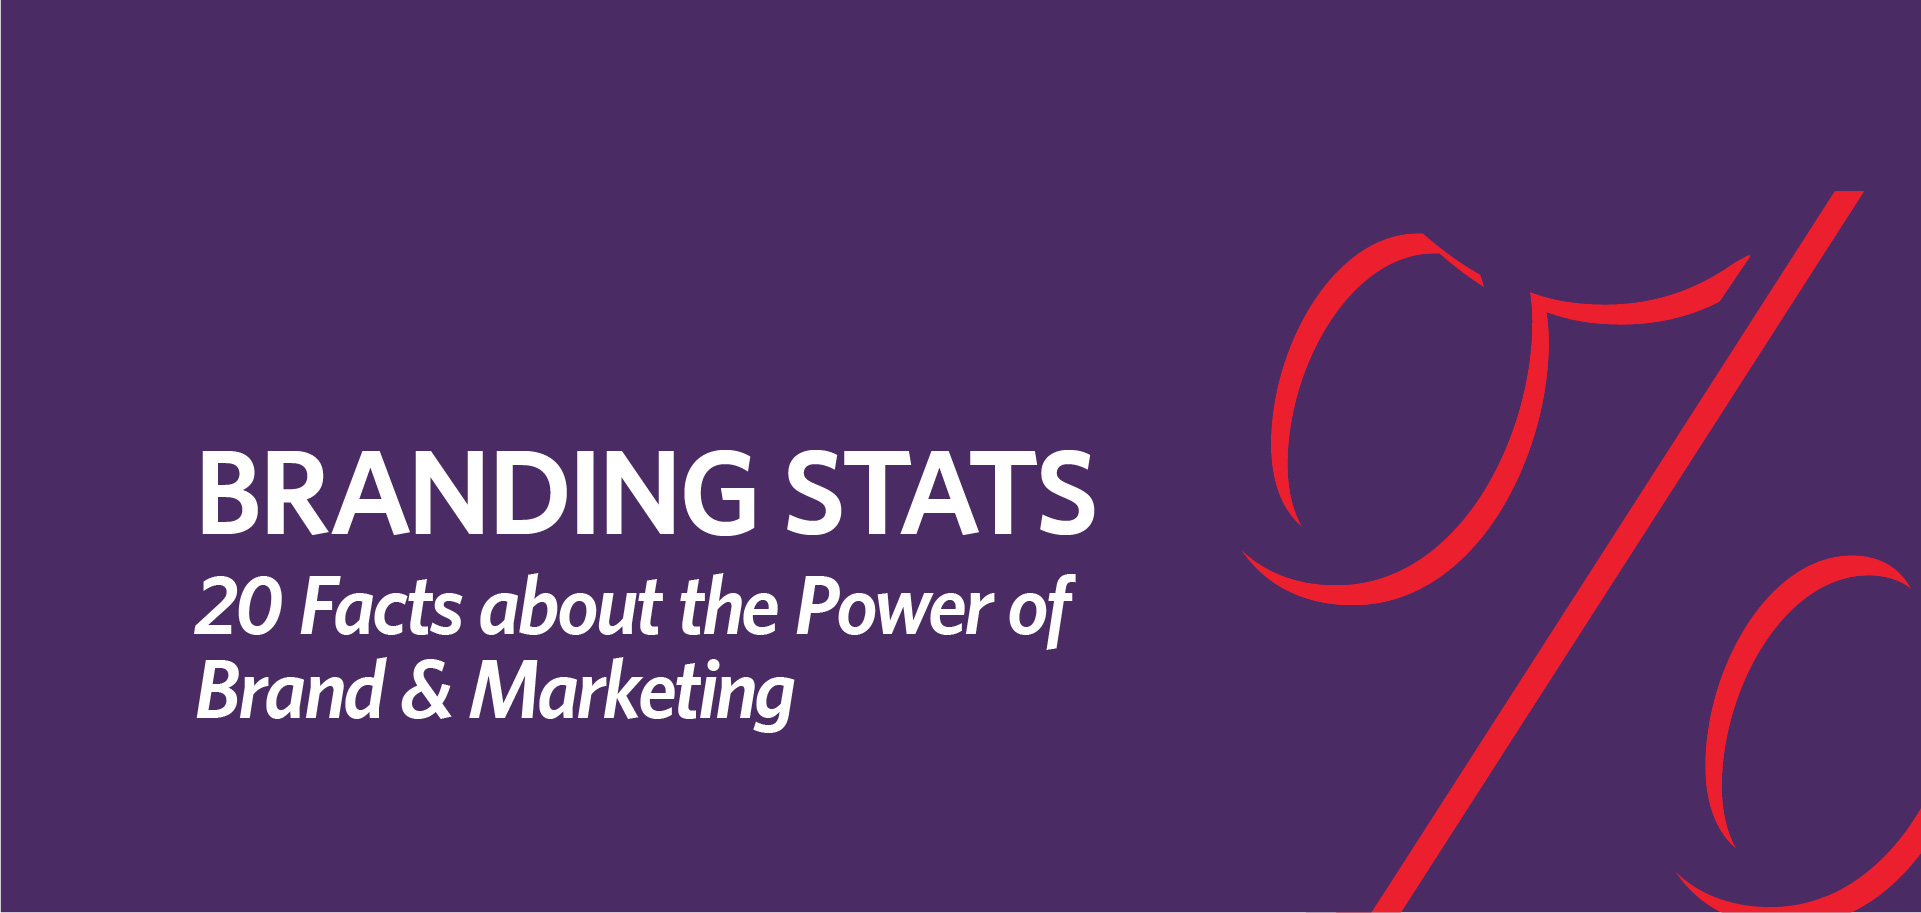 Branding Stats Marketing Facts power of brand Kettle Fire Creative blog branding Branding Stats: 20 Facts about the Power of Brand & Marketing branding quotes fi